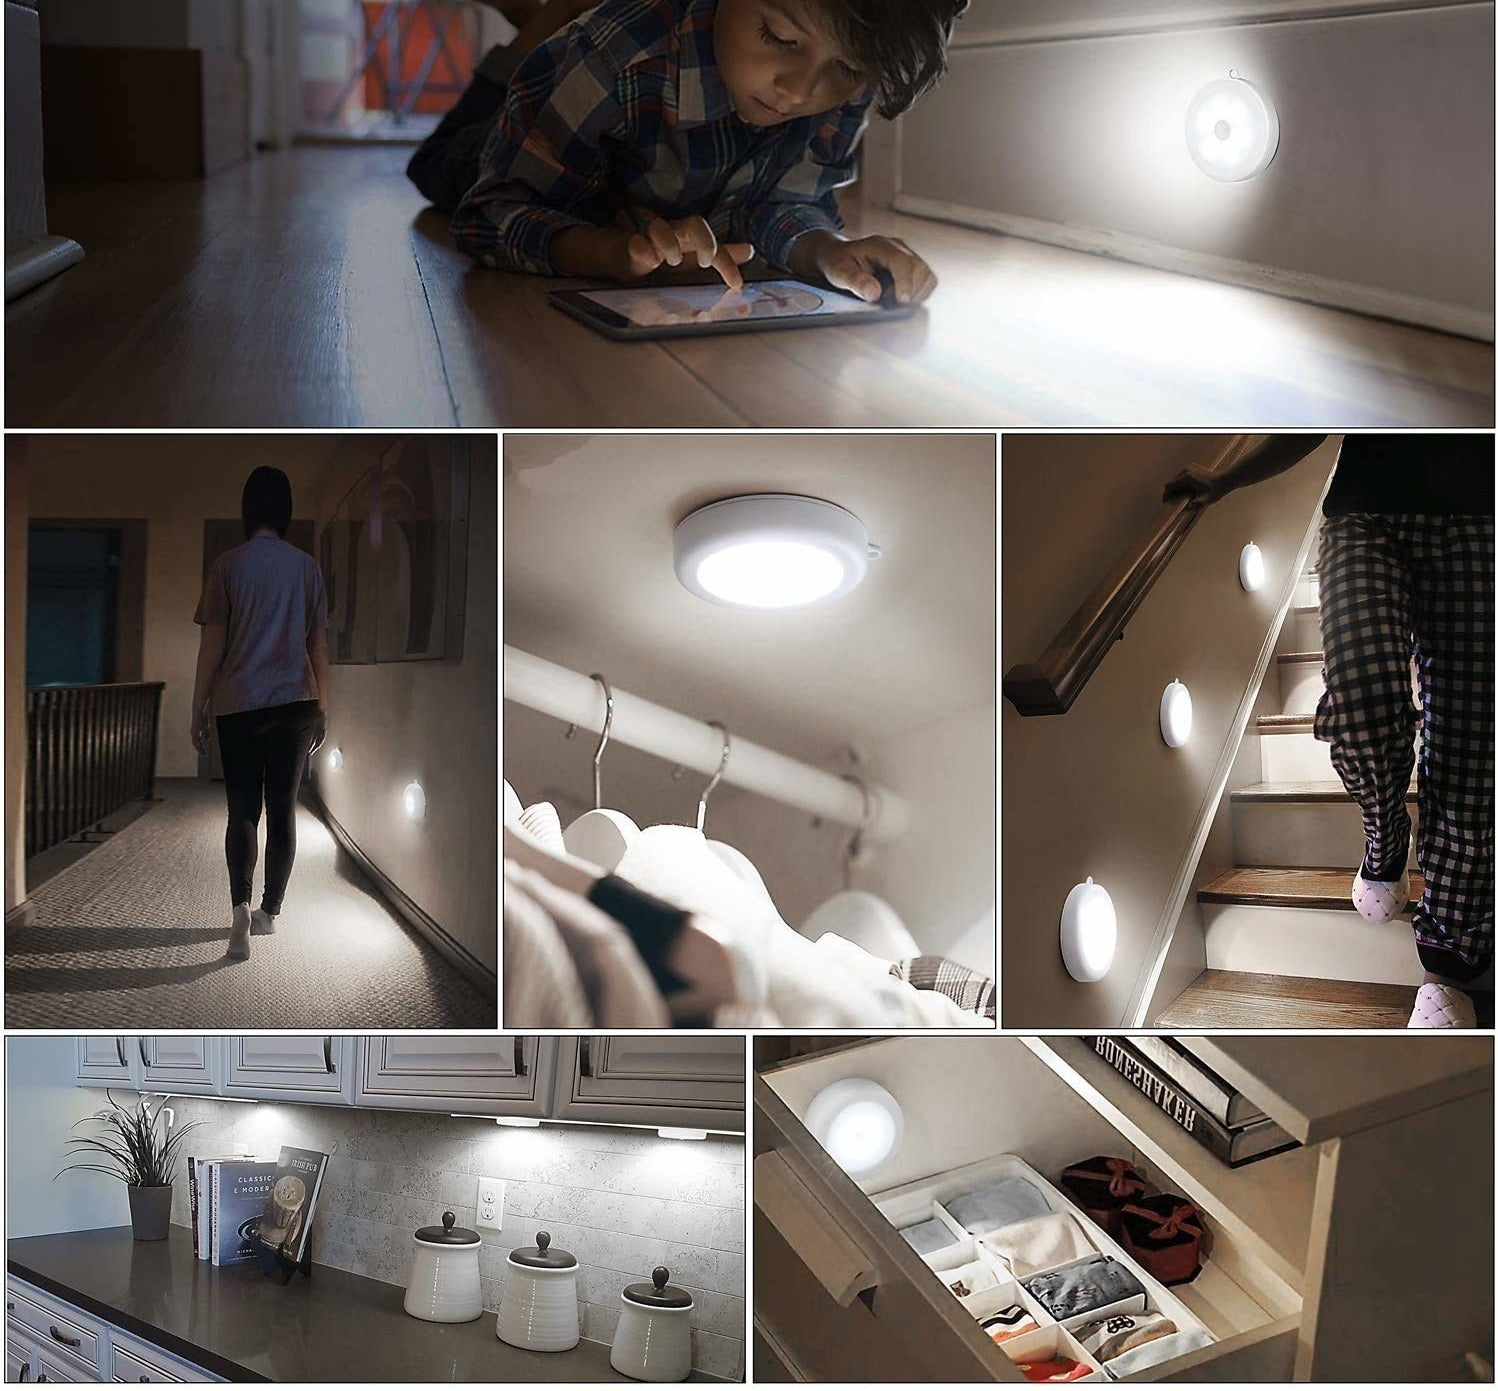 A collage of different places in a house lit by motion-sensing LED lights